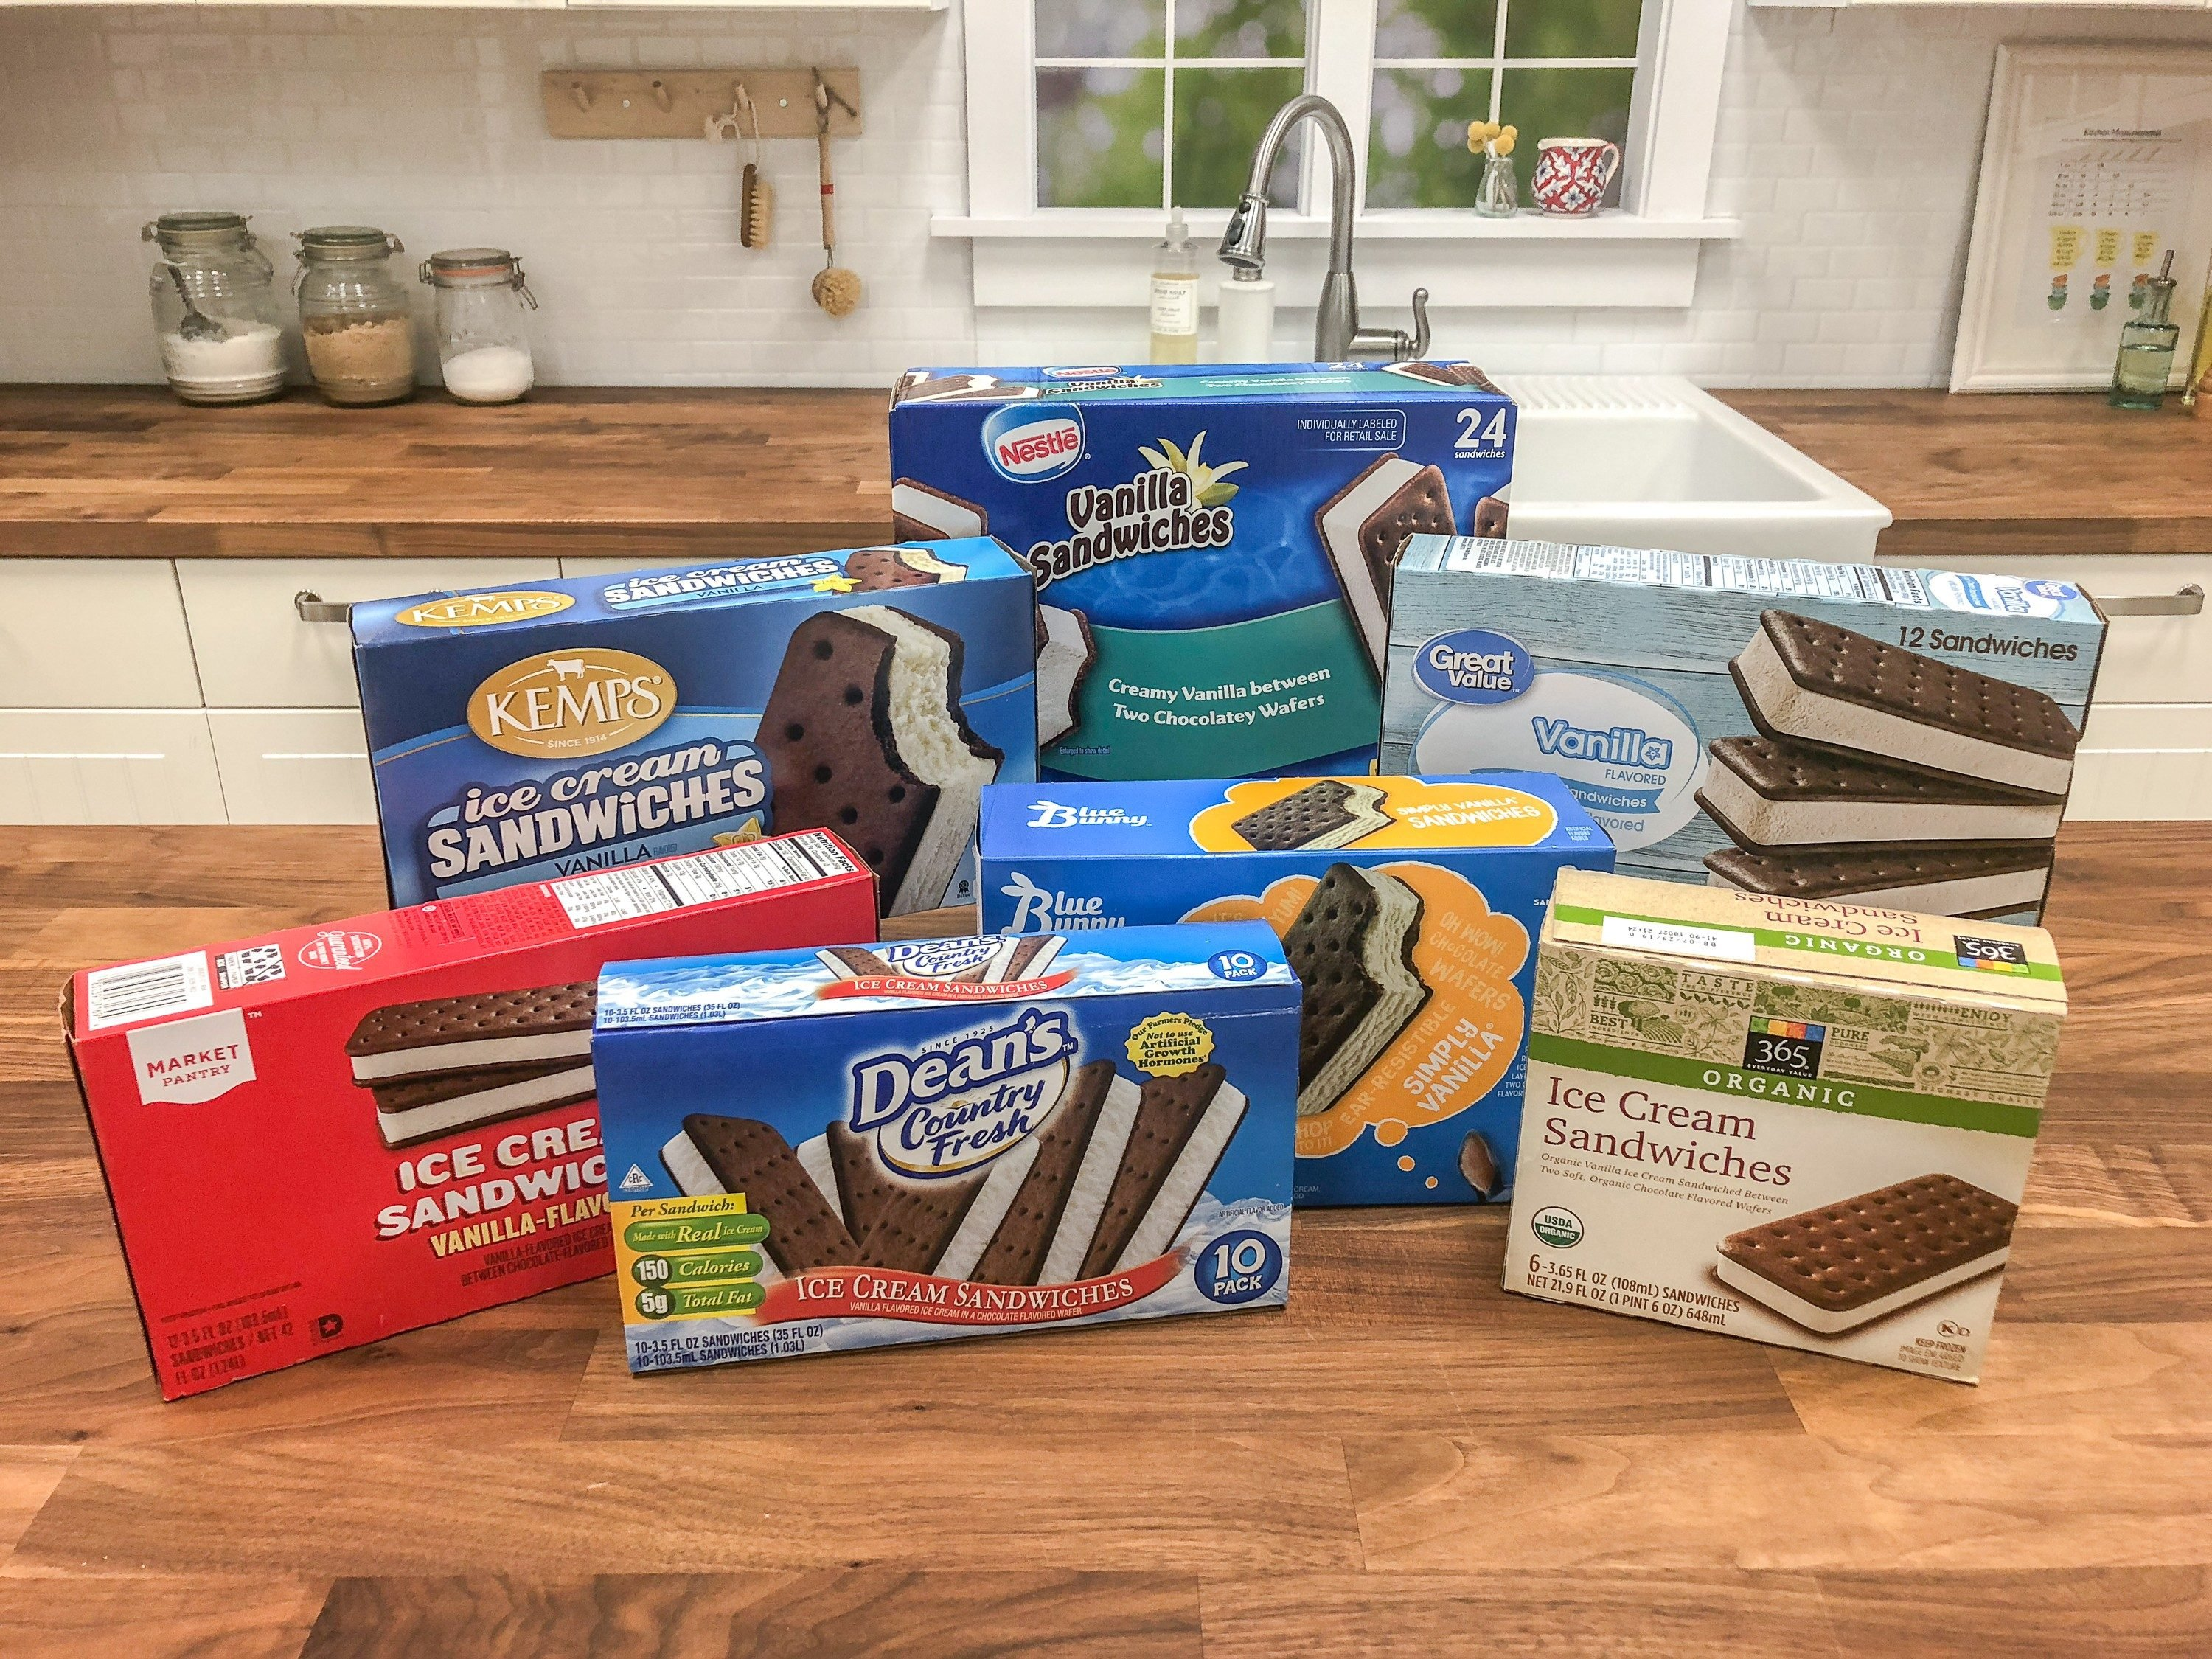 We Tried 7 Ice Cream Sandwich Brands Find Out Which Were Buying